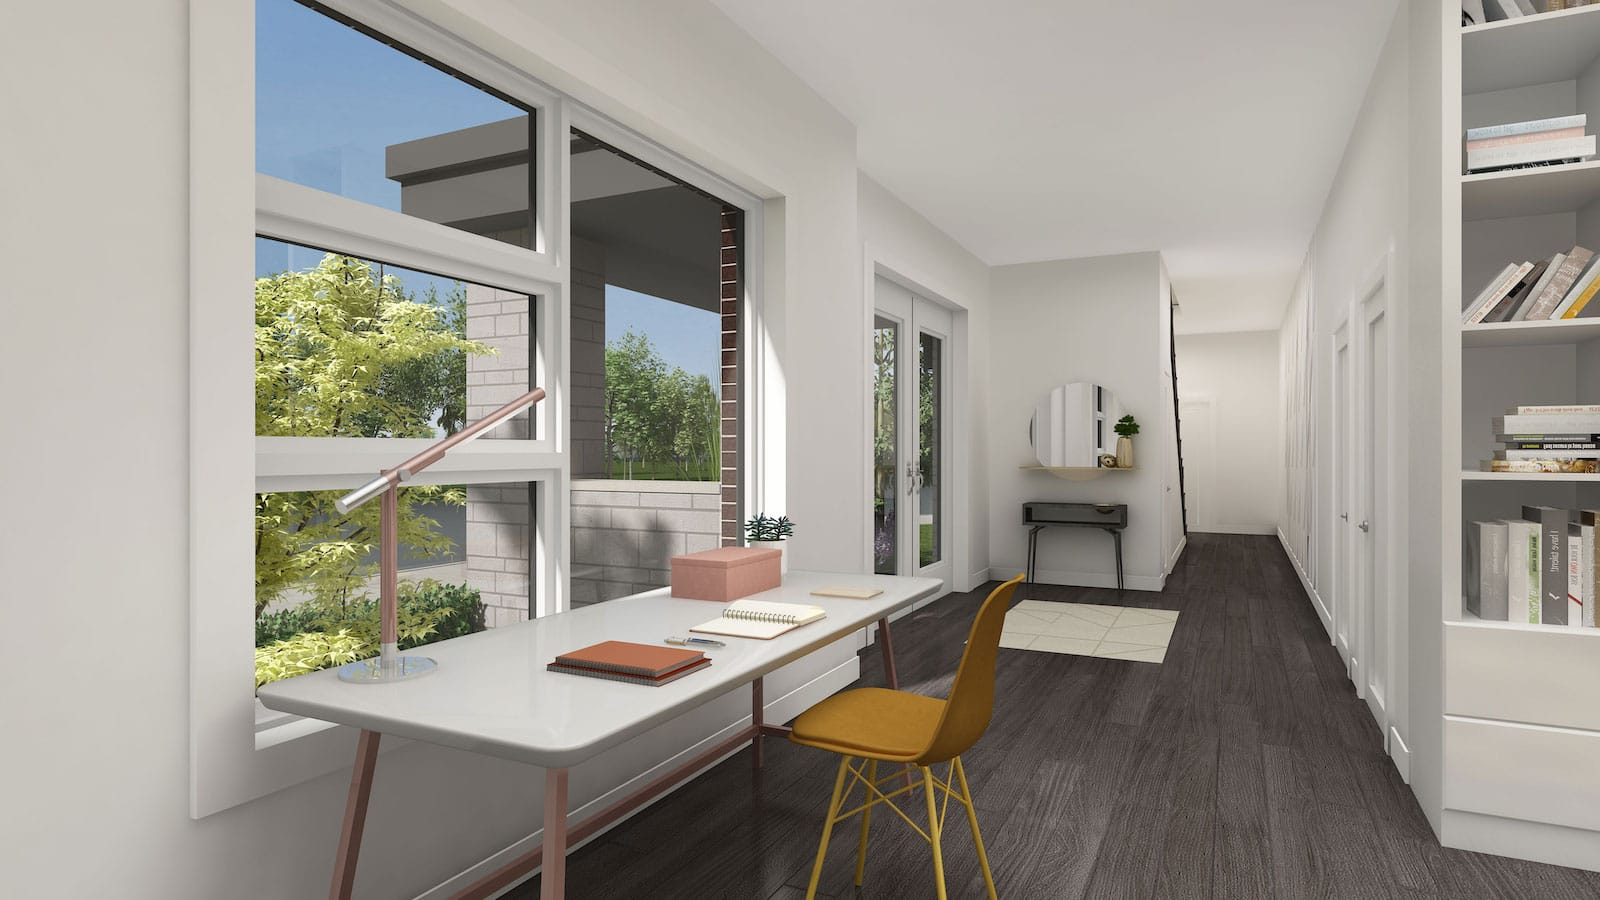 NuTowns Interior Rendering of Office Space